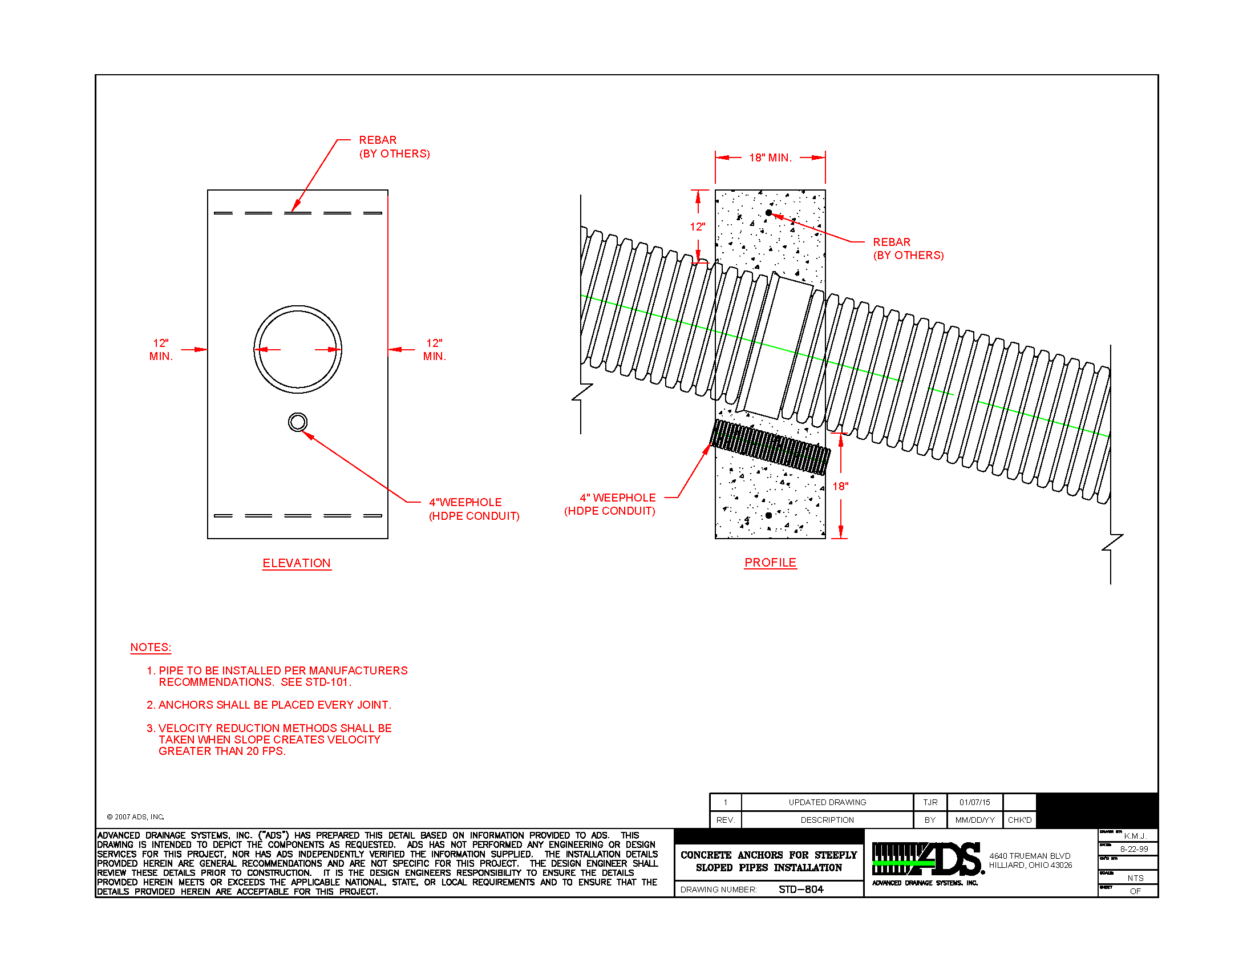 Stormwater Pipe Design Spreadsheet In Drainage Engineering Resources  Advanced Drainage Systems